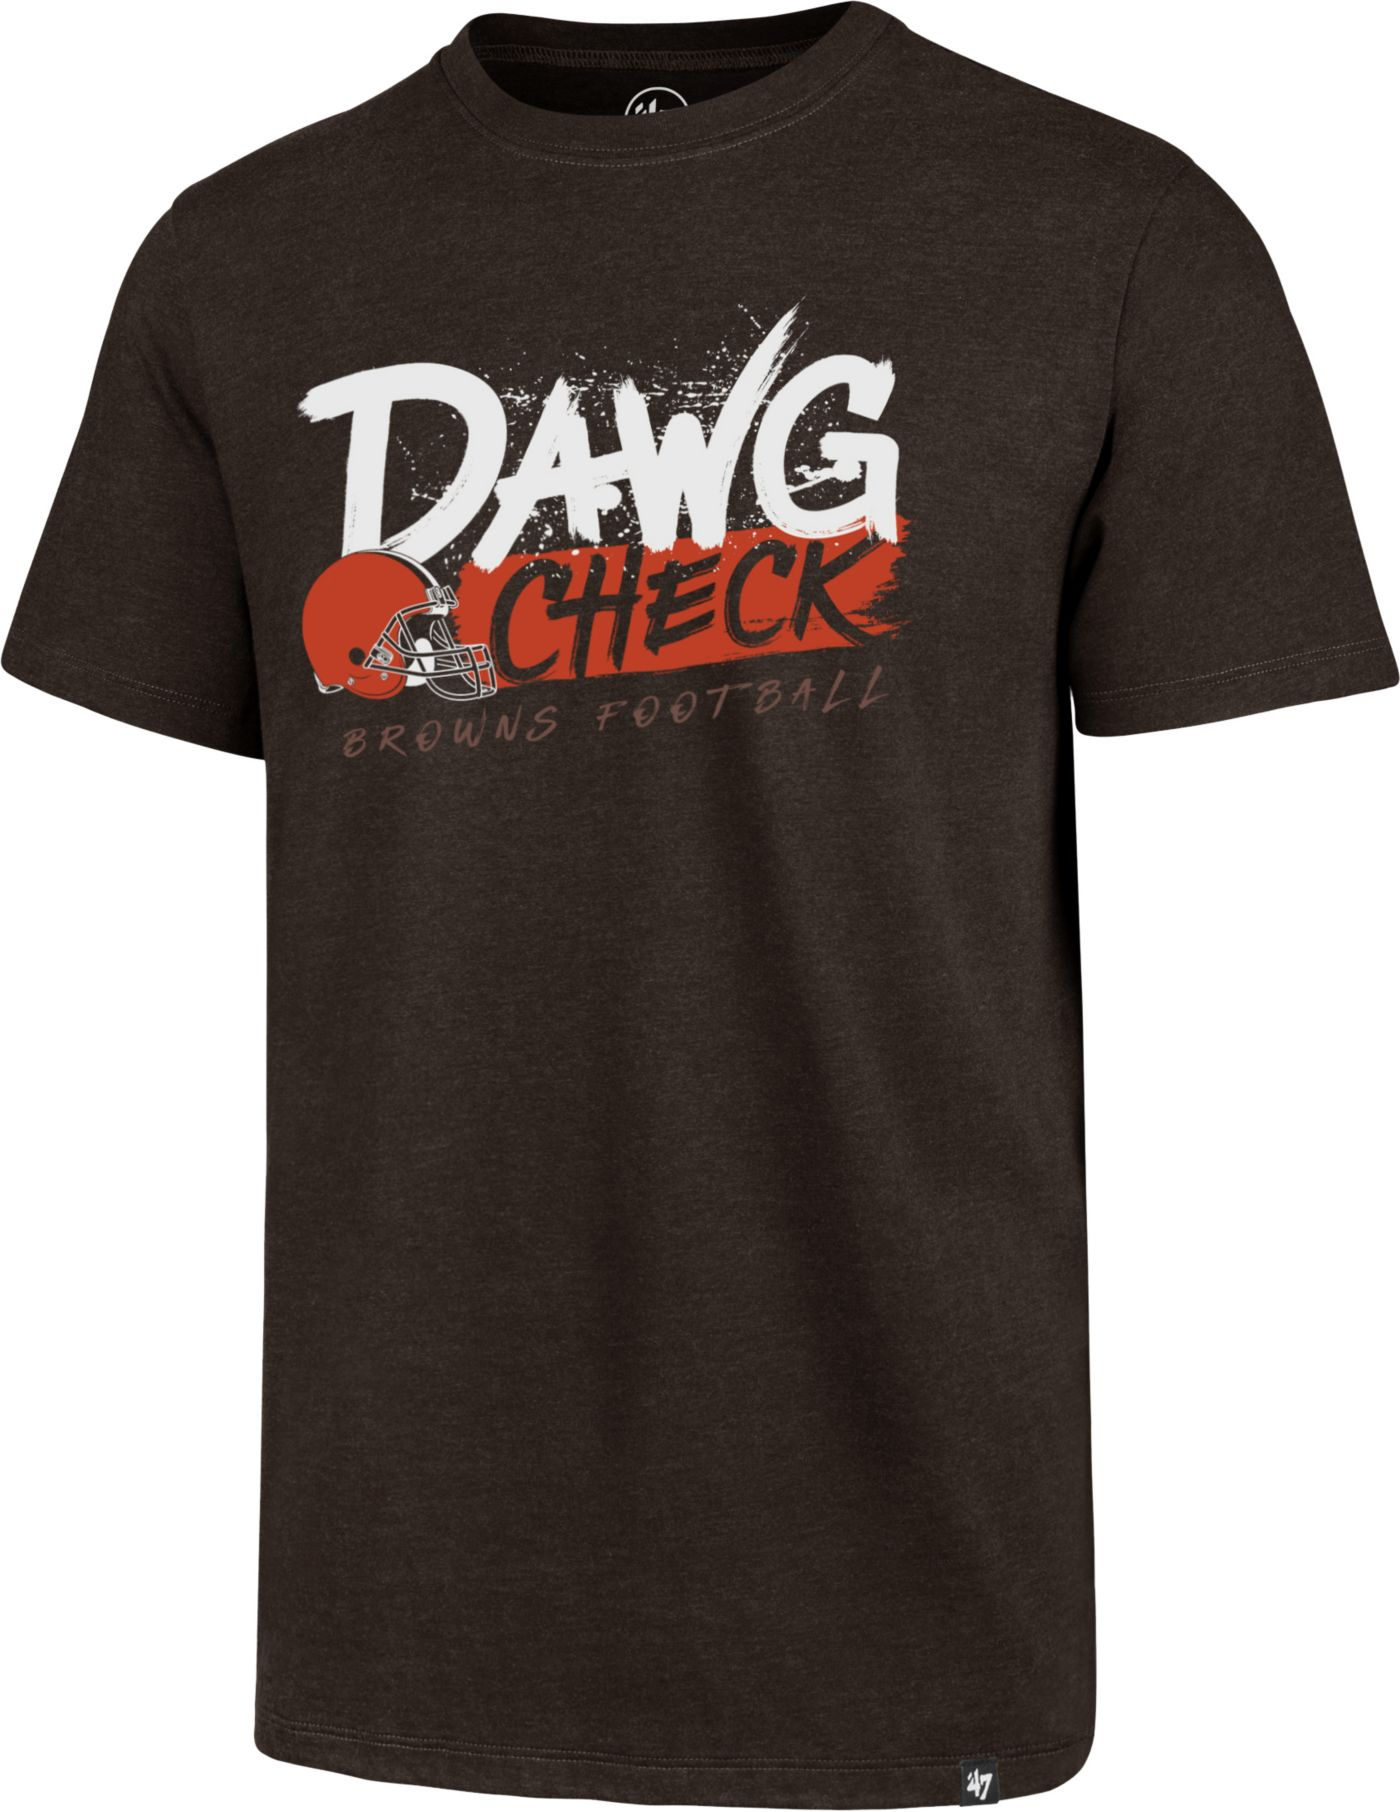 '47 Men's Cleveland Browns Dawg Check Brown T-Shirt